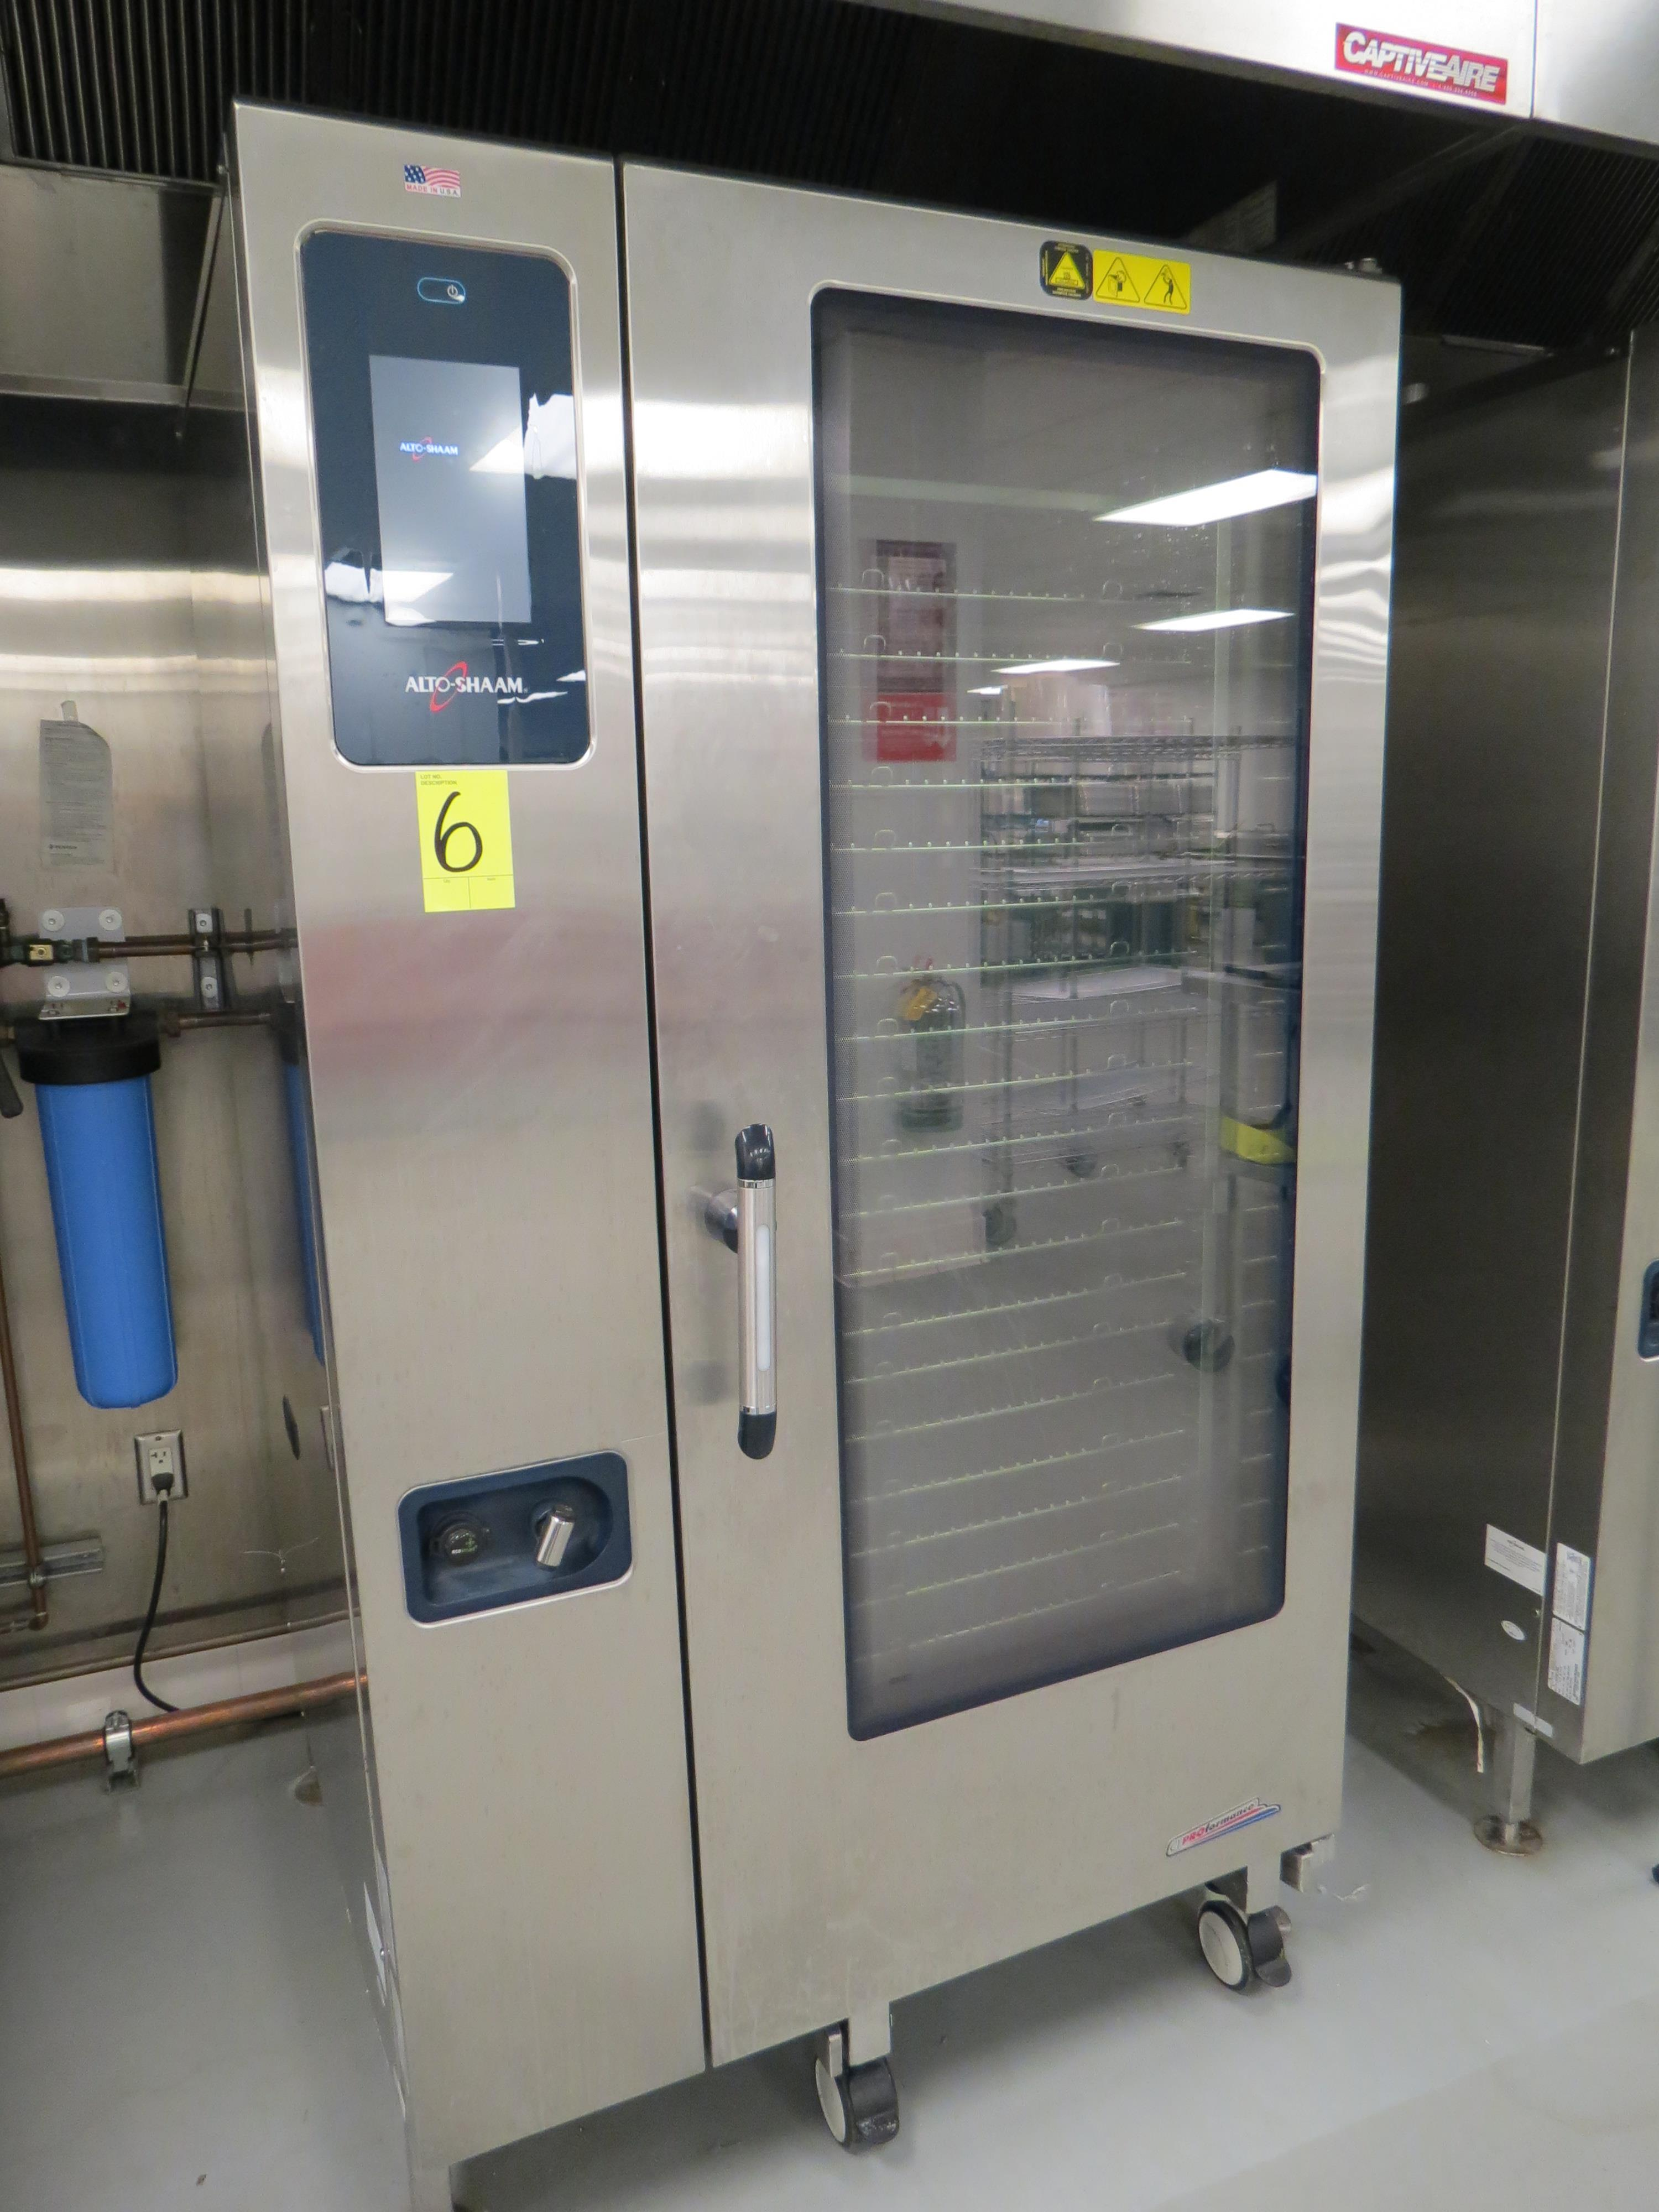 Lot 6 - ALTO-SHAAM MDL. CTP20-20G COMBI OVEN, SN: 1836599-000, W/ ROLLING RACK